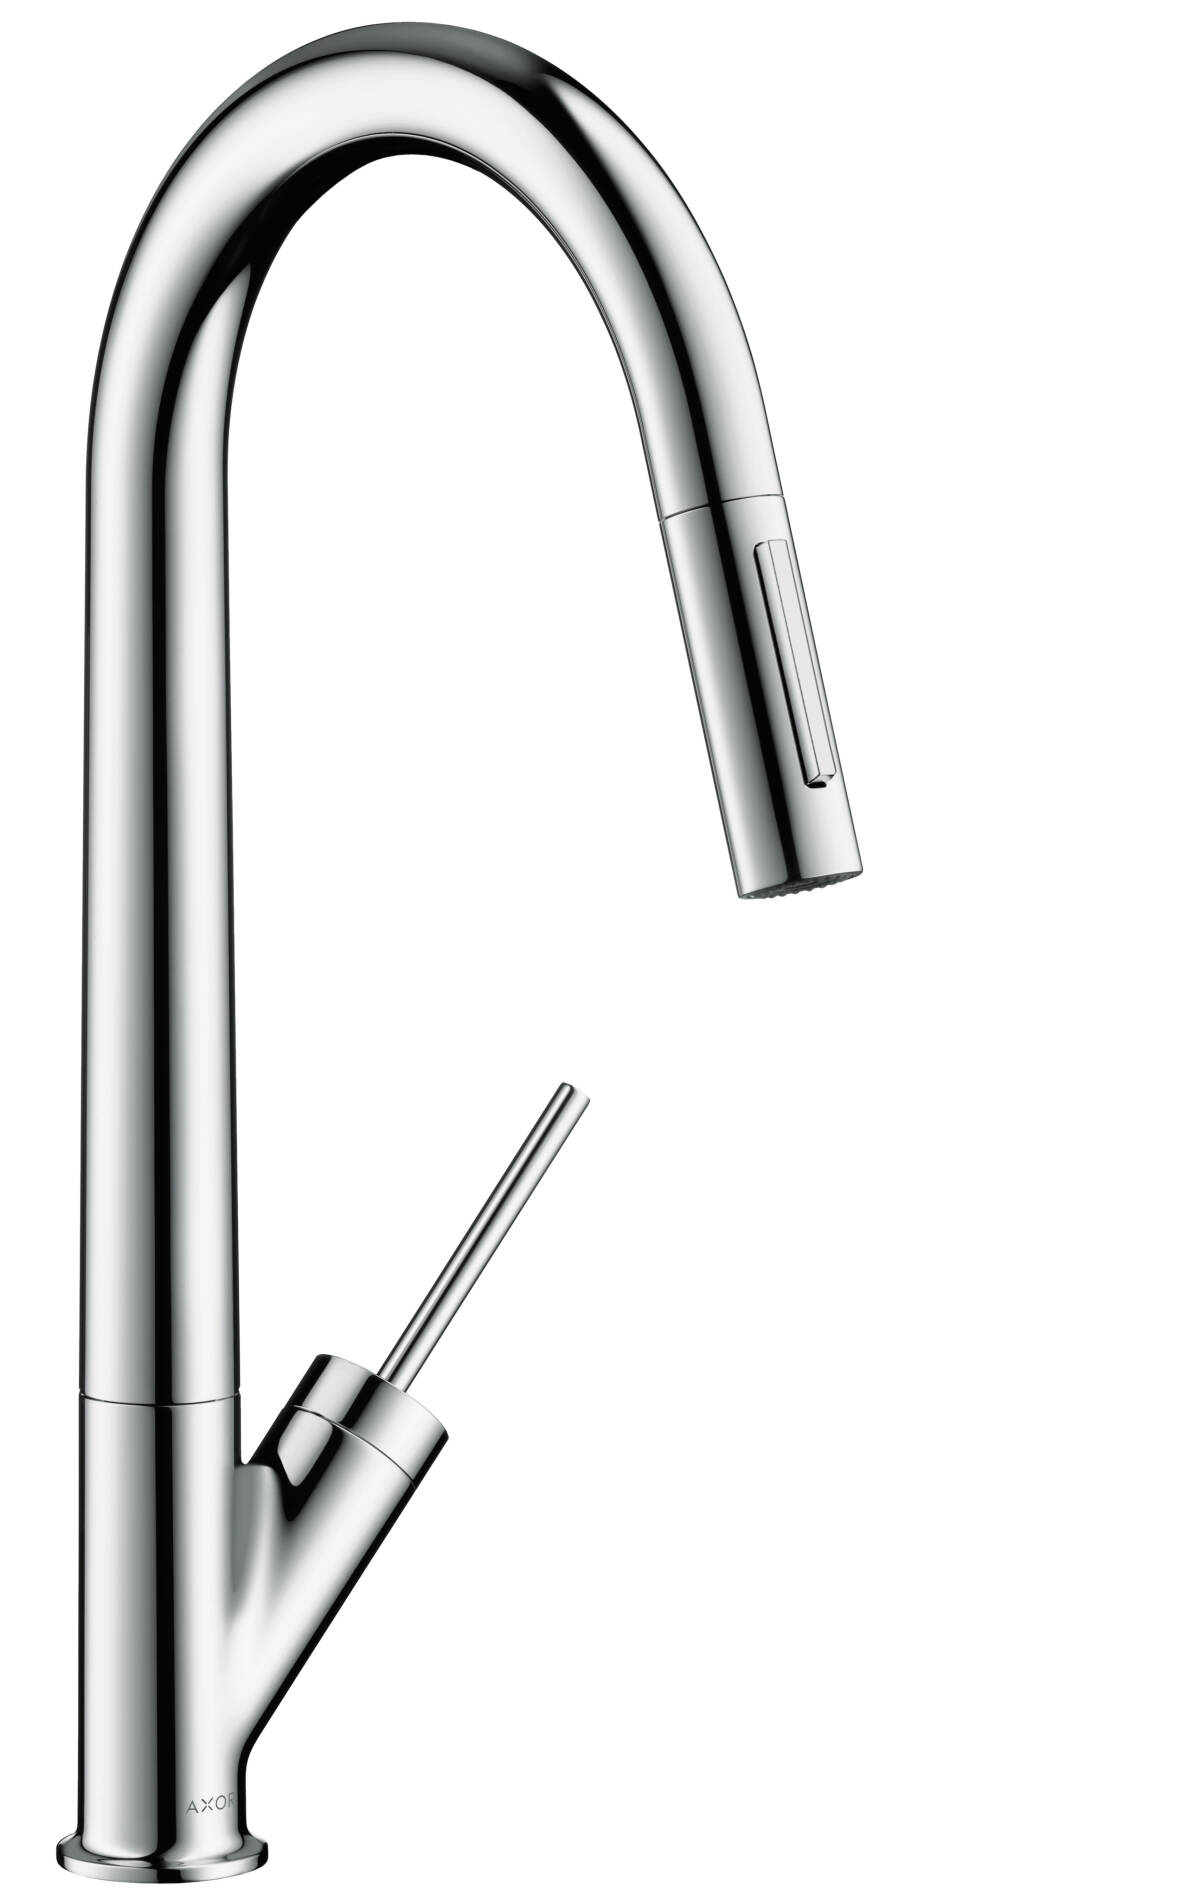 Single lever kitchen mixer 270 with pull-out spray, Brushed Black Chrome, 10821340